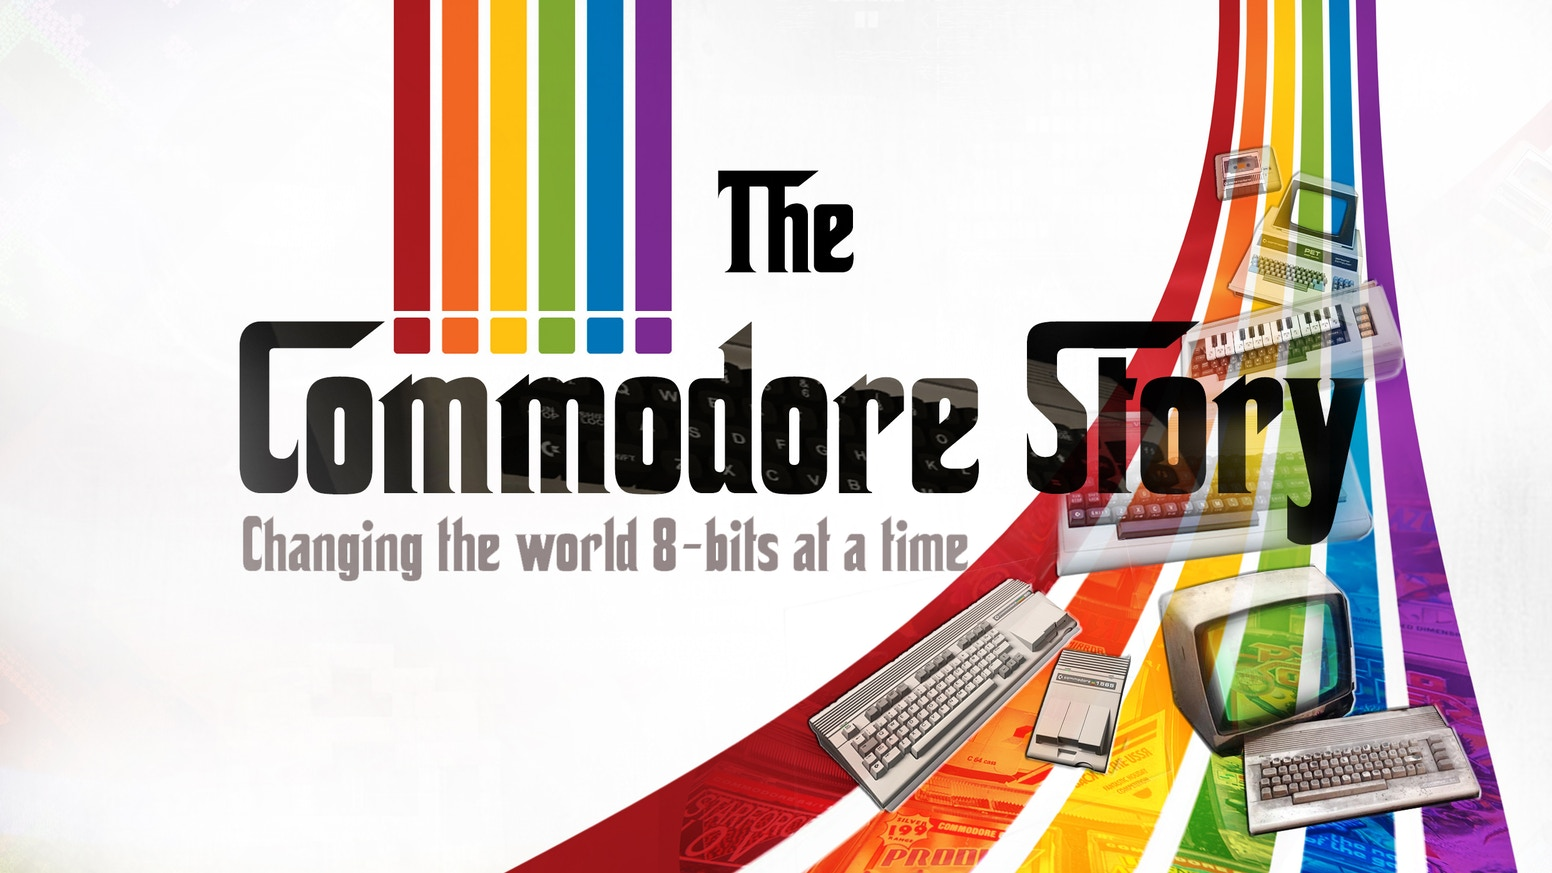 The Commodore Story of the PET Vic20 C64 & Amiga from engineers, games developers & how CBM influenced the first 8-bit generation users